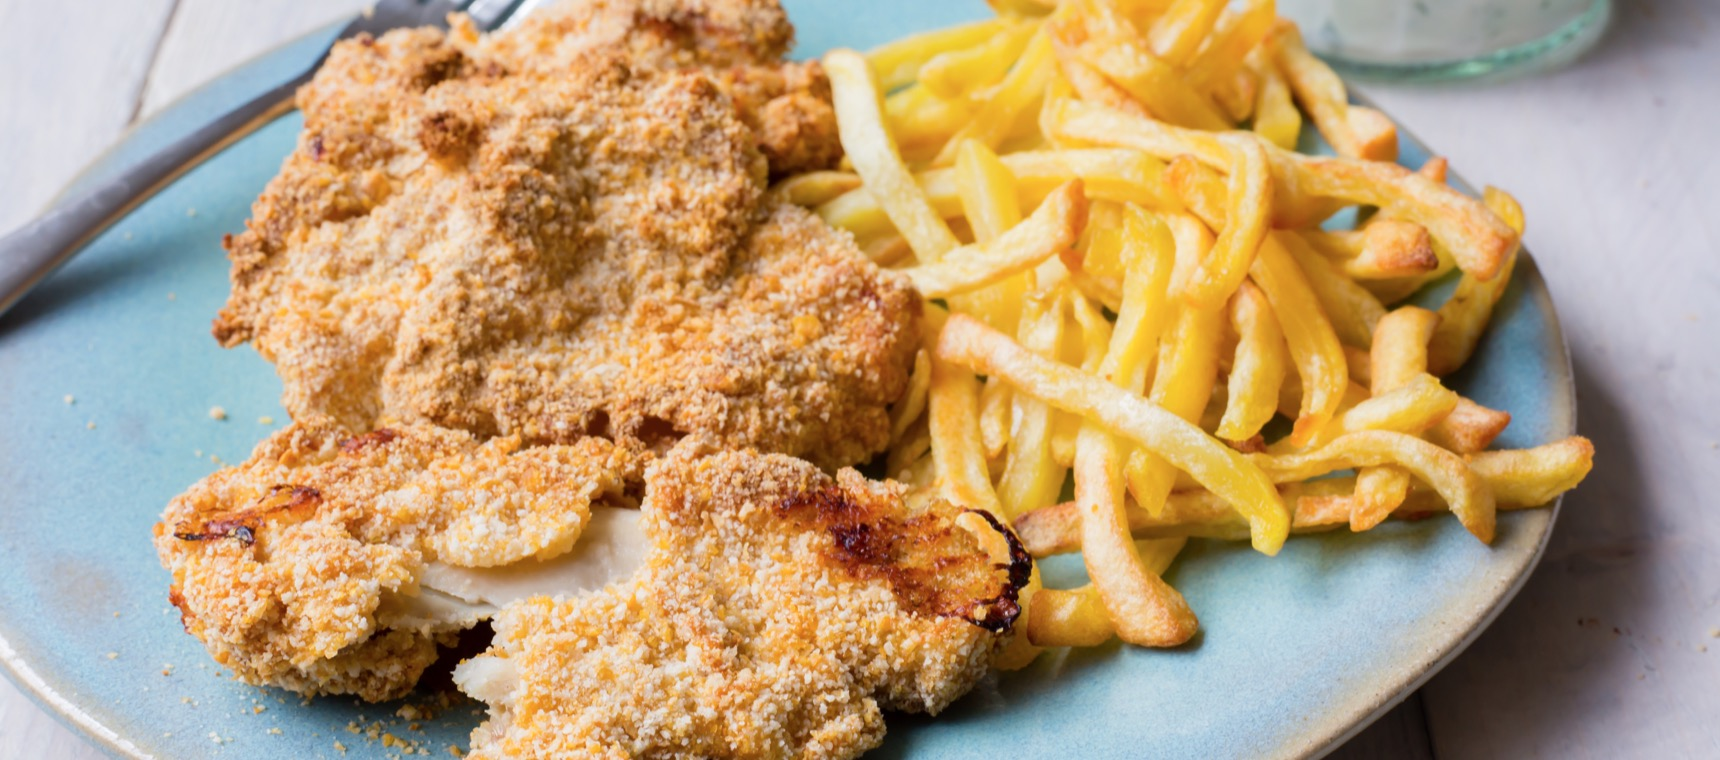 Mini Chicken Schnitzels with Dipping Sauce